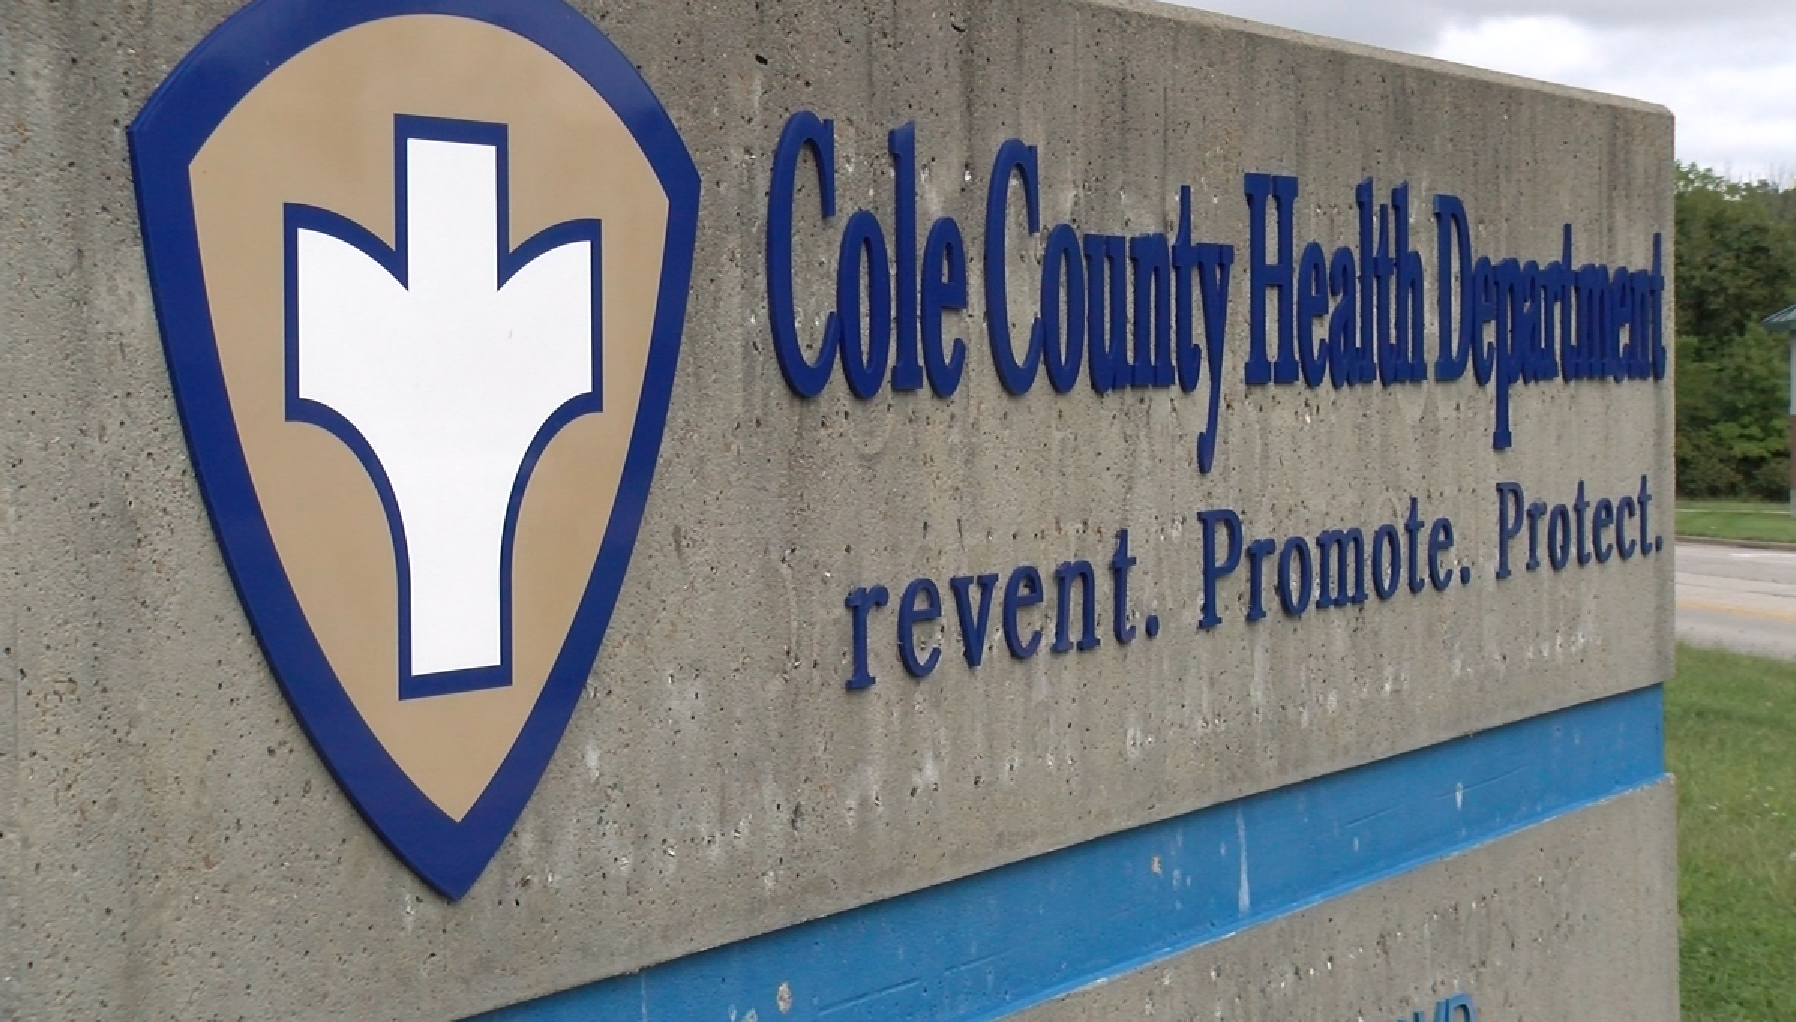 Cole County Health Department 9-1